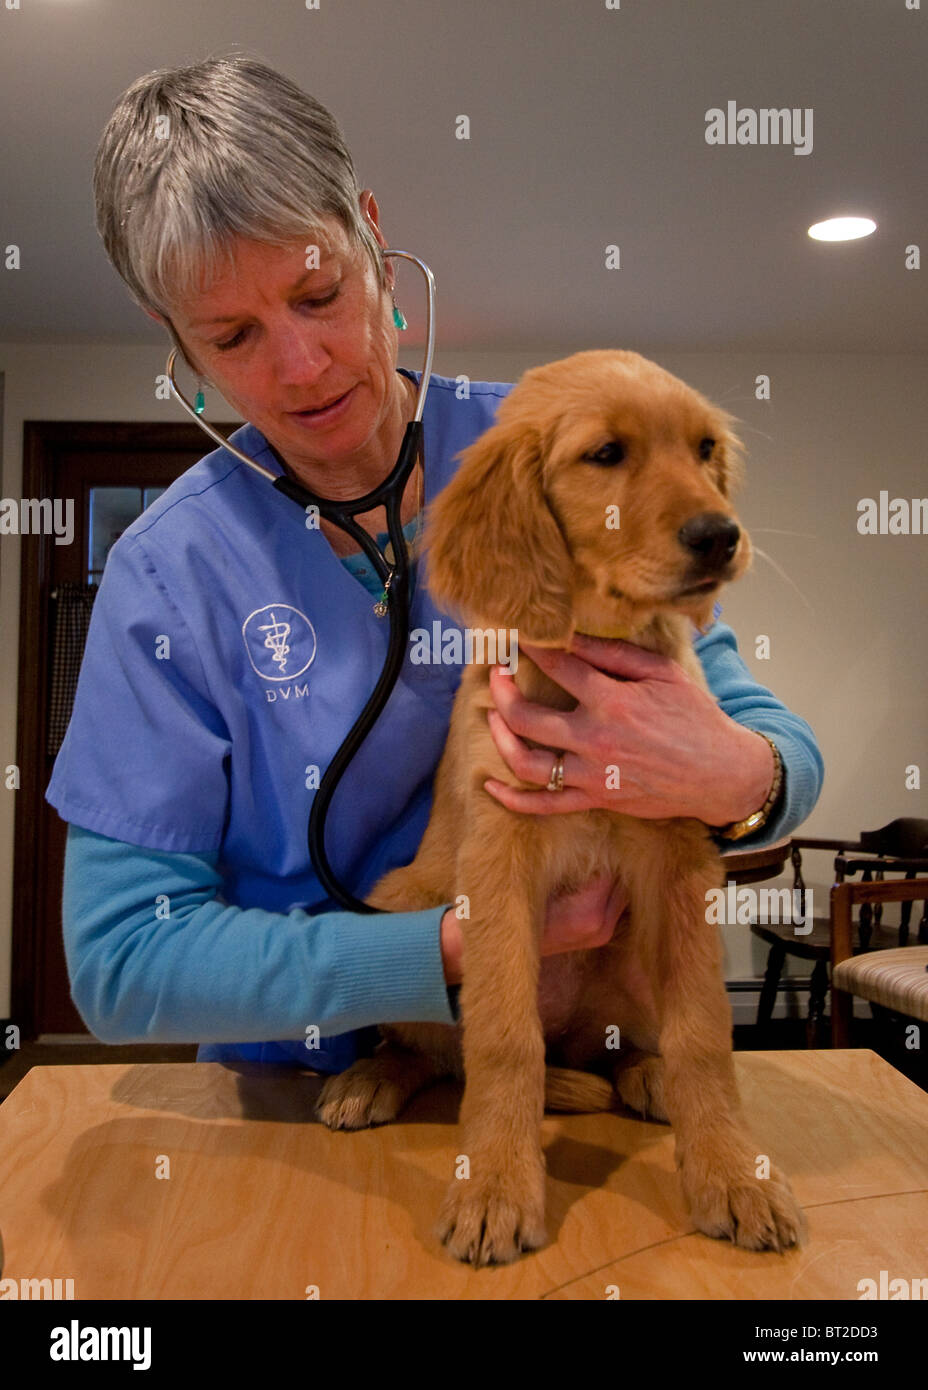 Female veterinarian examines a puppy at a veterinary clinic - Stock Image